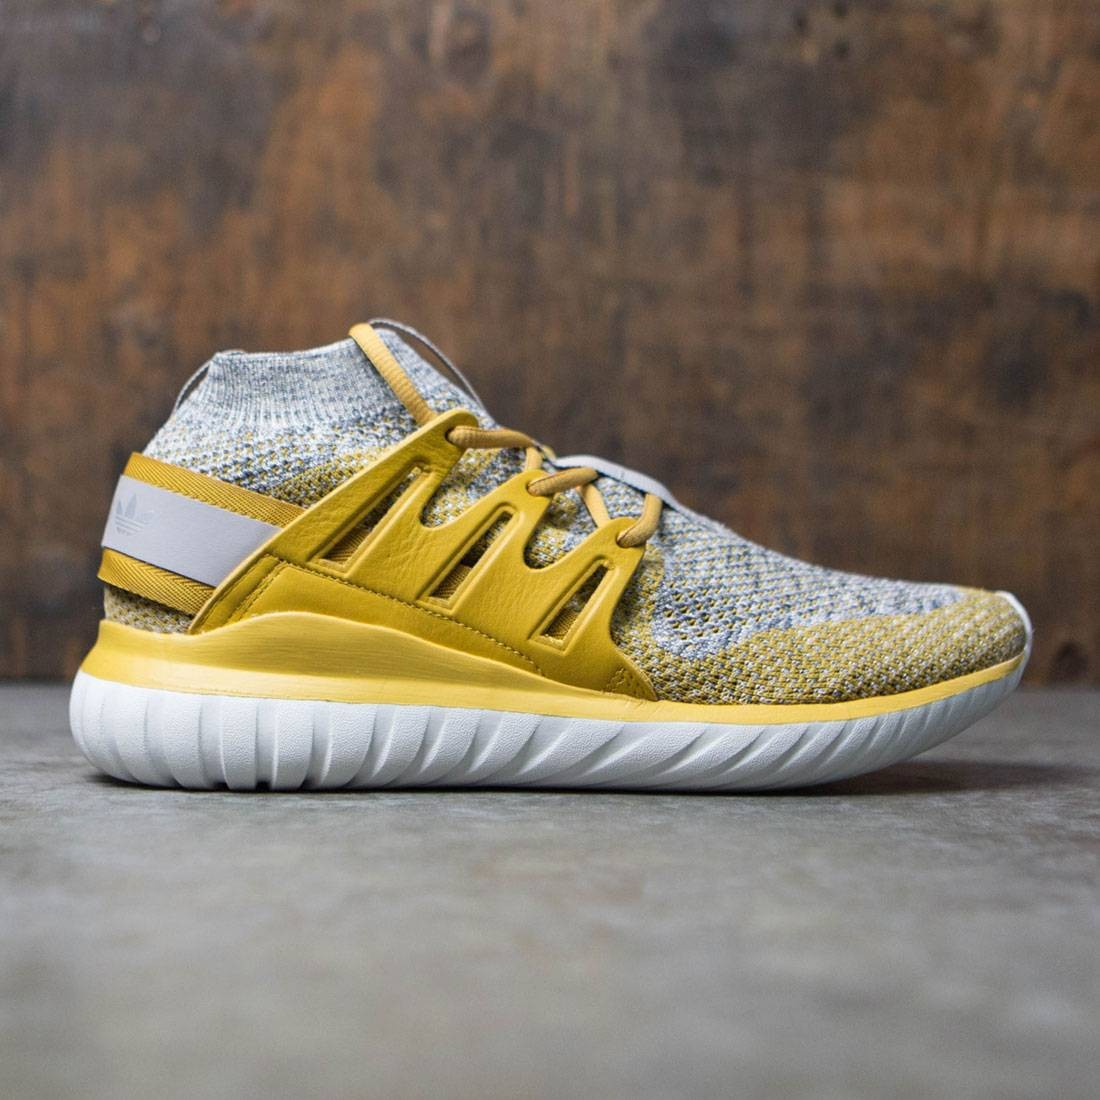 Adidas Men Tubular Nova Primeknit (yellow / st nomad yellow / granite)